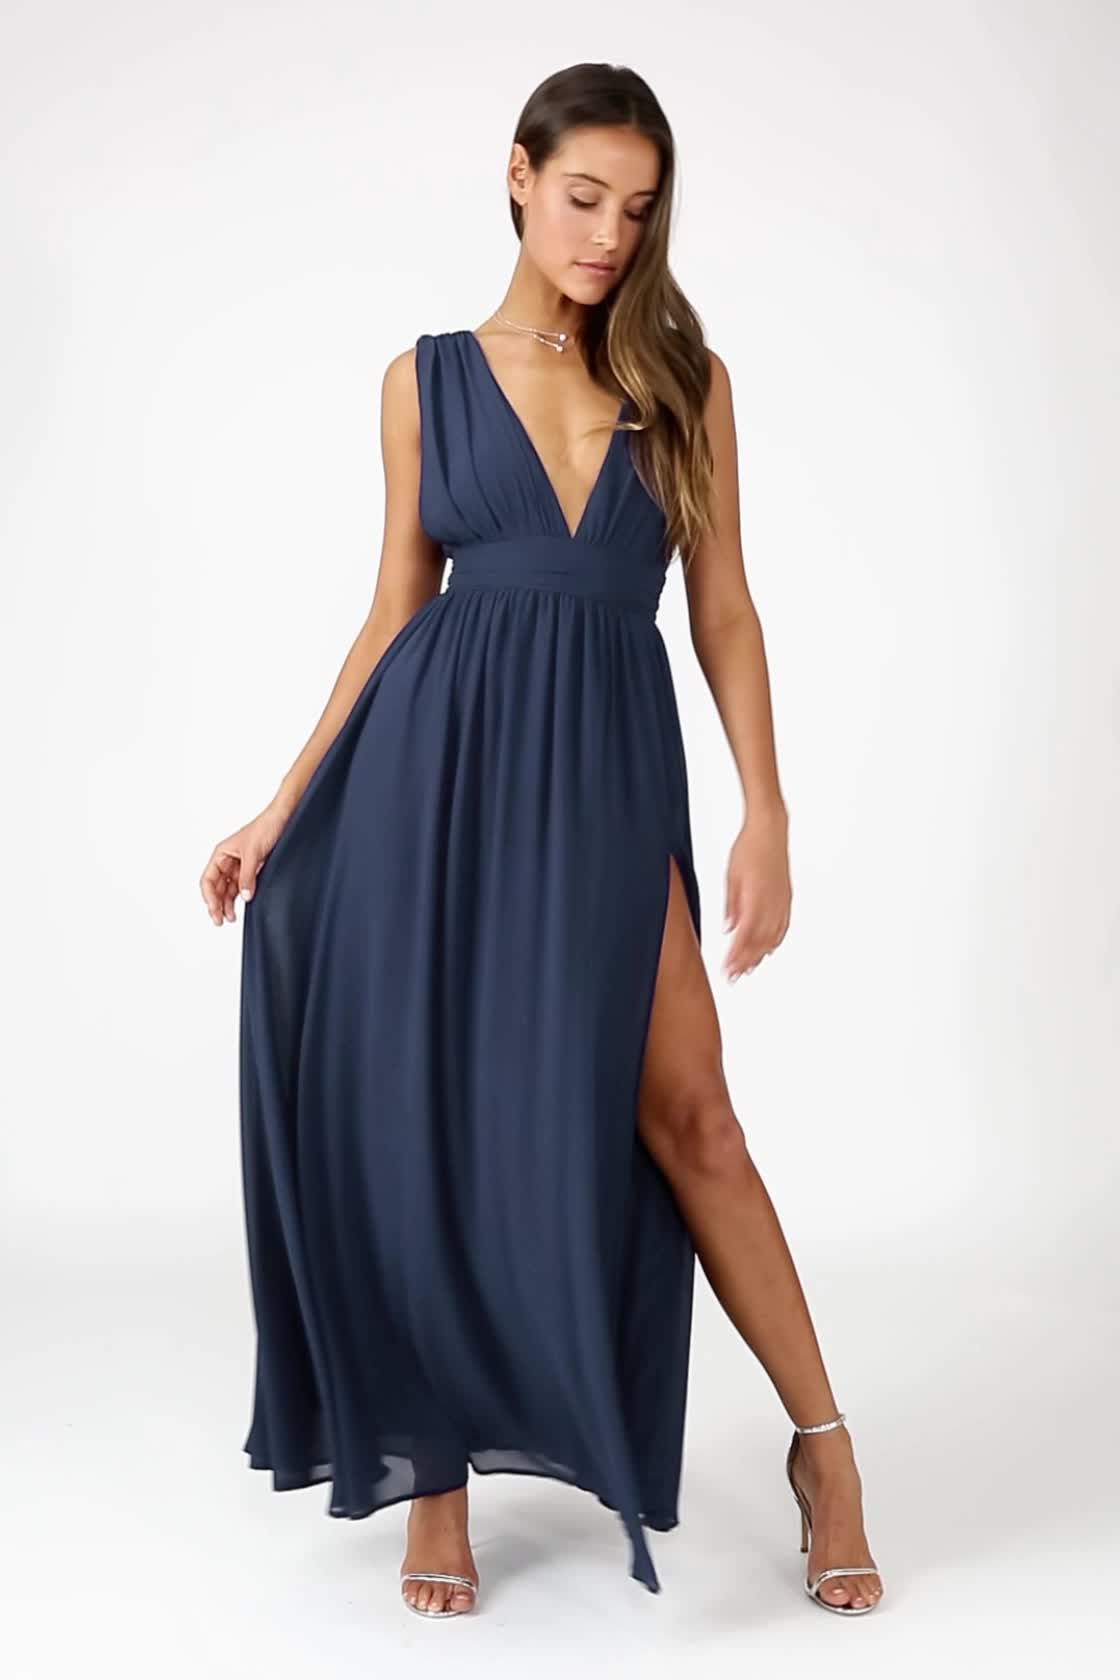 9c9835841d Heavenly Hues Navy Blue Maxi Dress